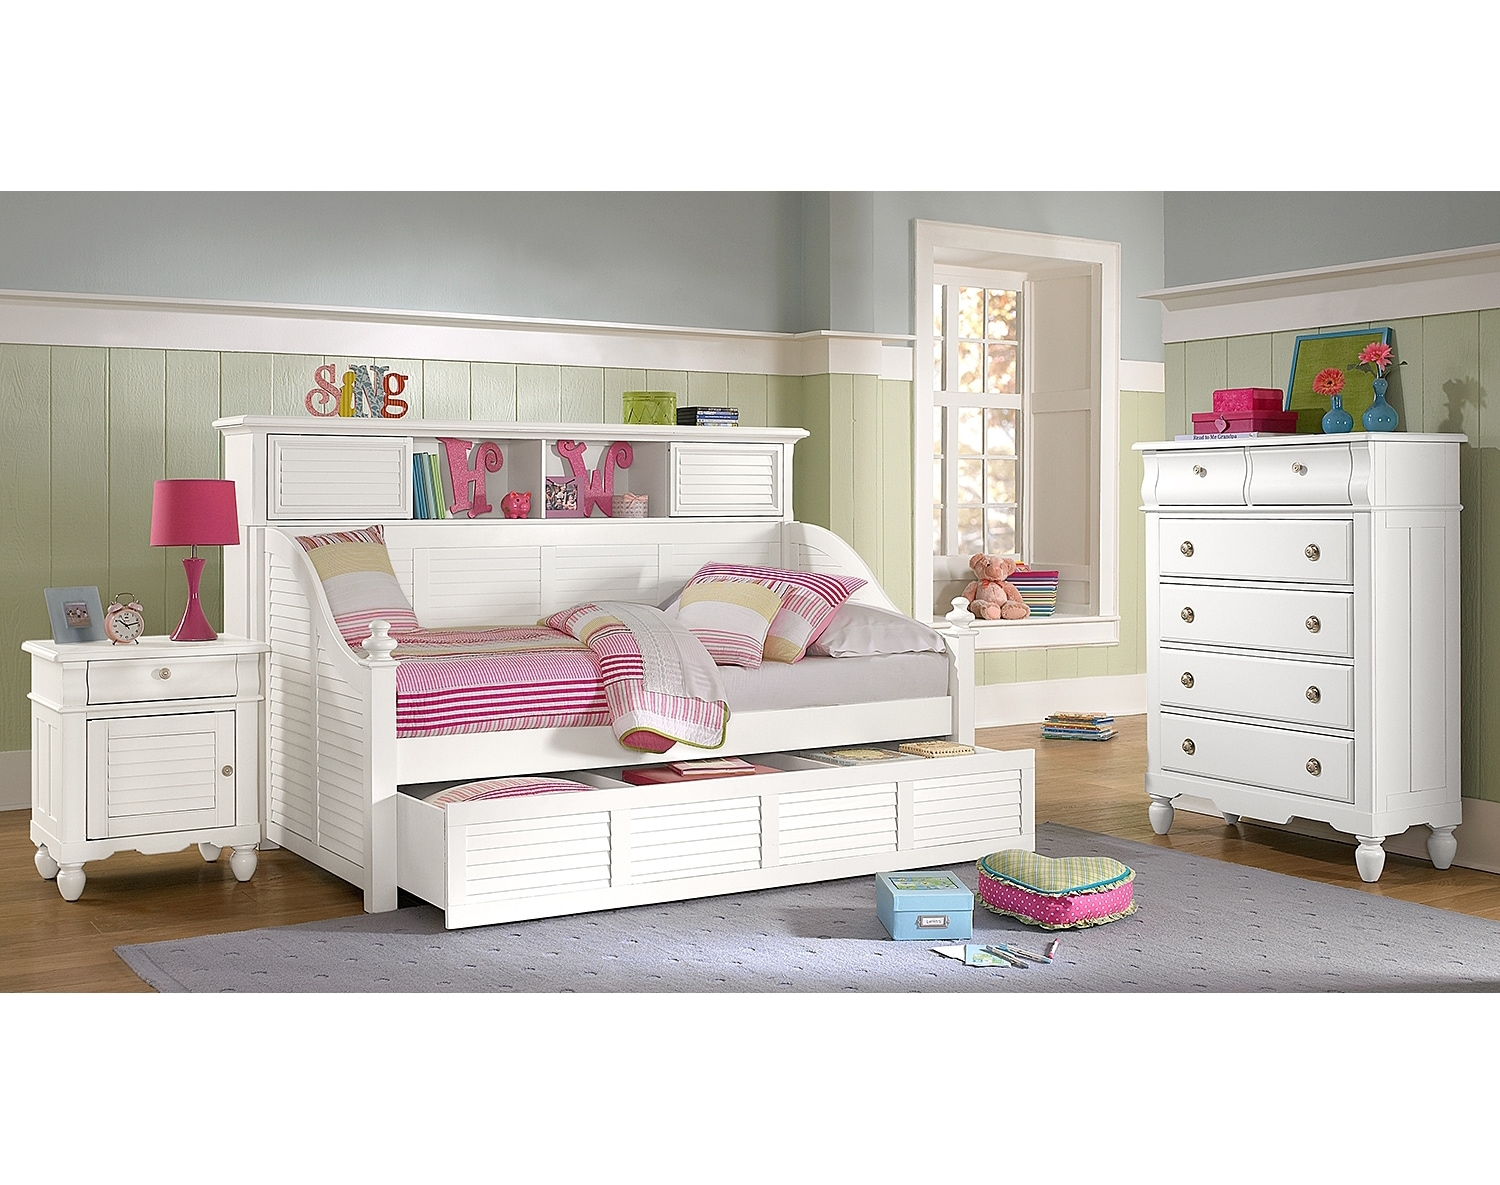 Daybeds Futons Bedroom Furniture Value City Furniture and